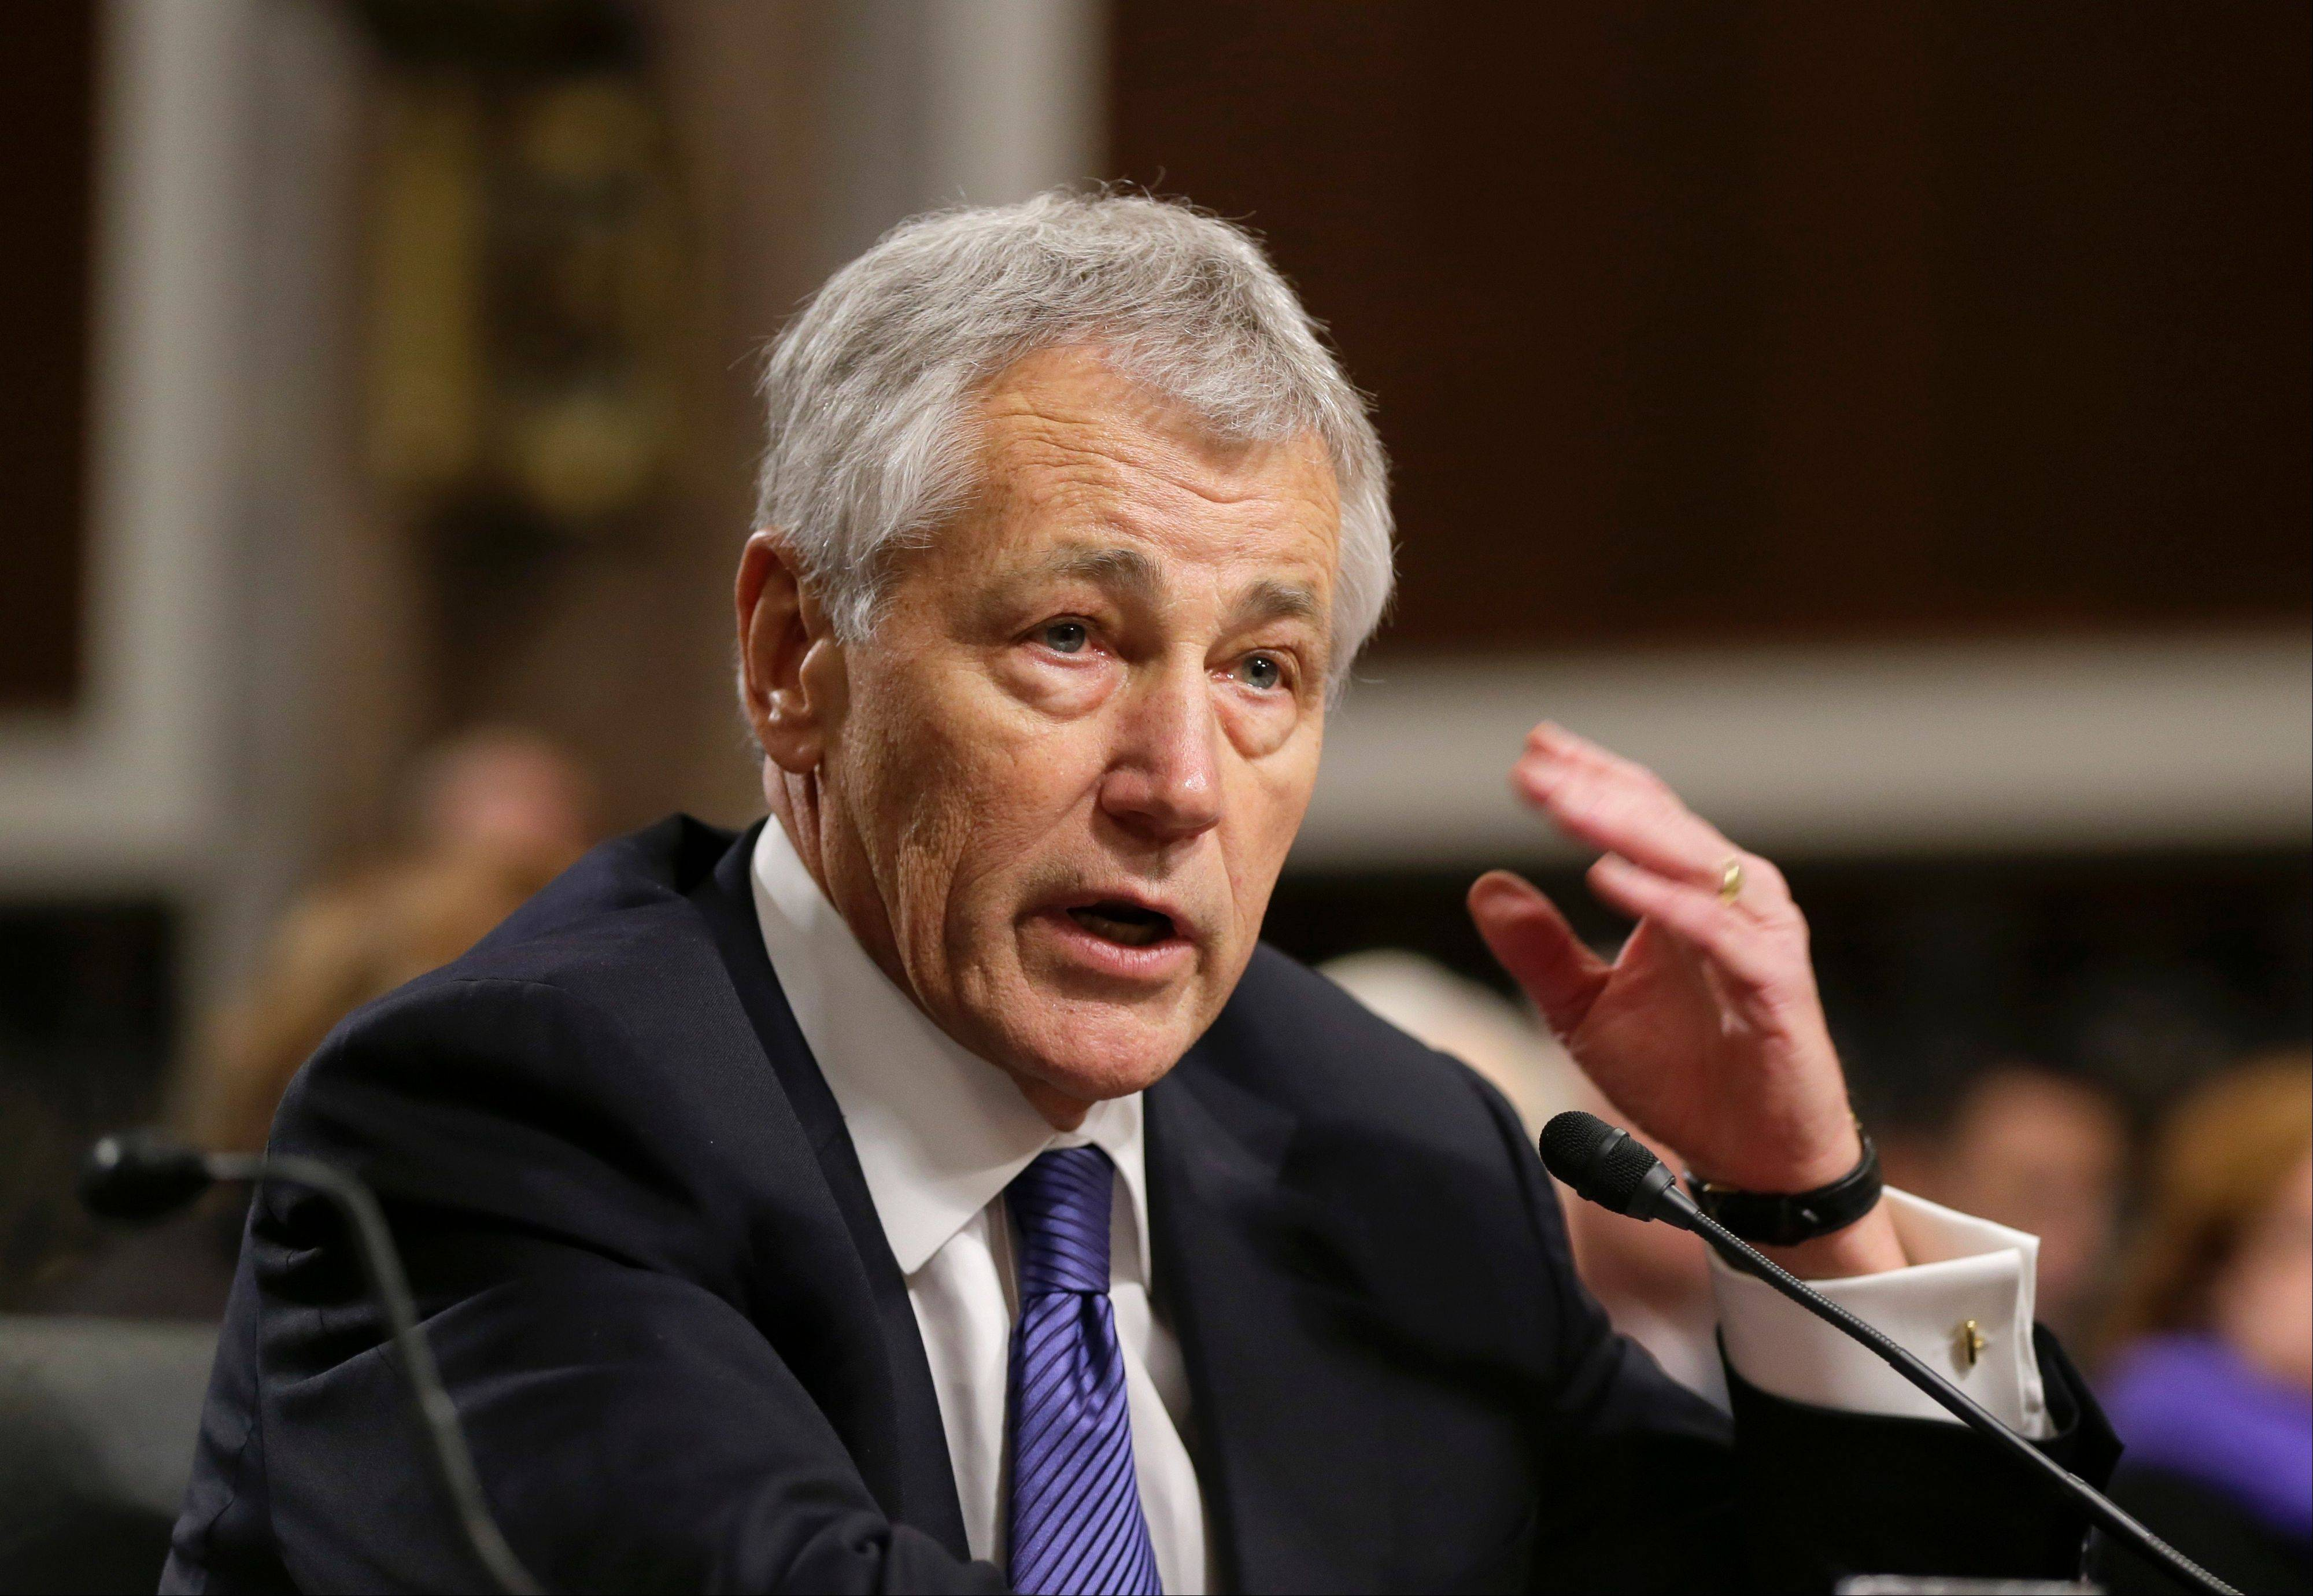 The Senate confirmed Chuck Hagel as secretary of defense after weeks of partisan acrimony over President Barack Obama�s choice to head the Pentagon in a time of budget-cutting and evolving threats from terrorism to cyber warfare.